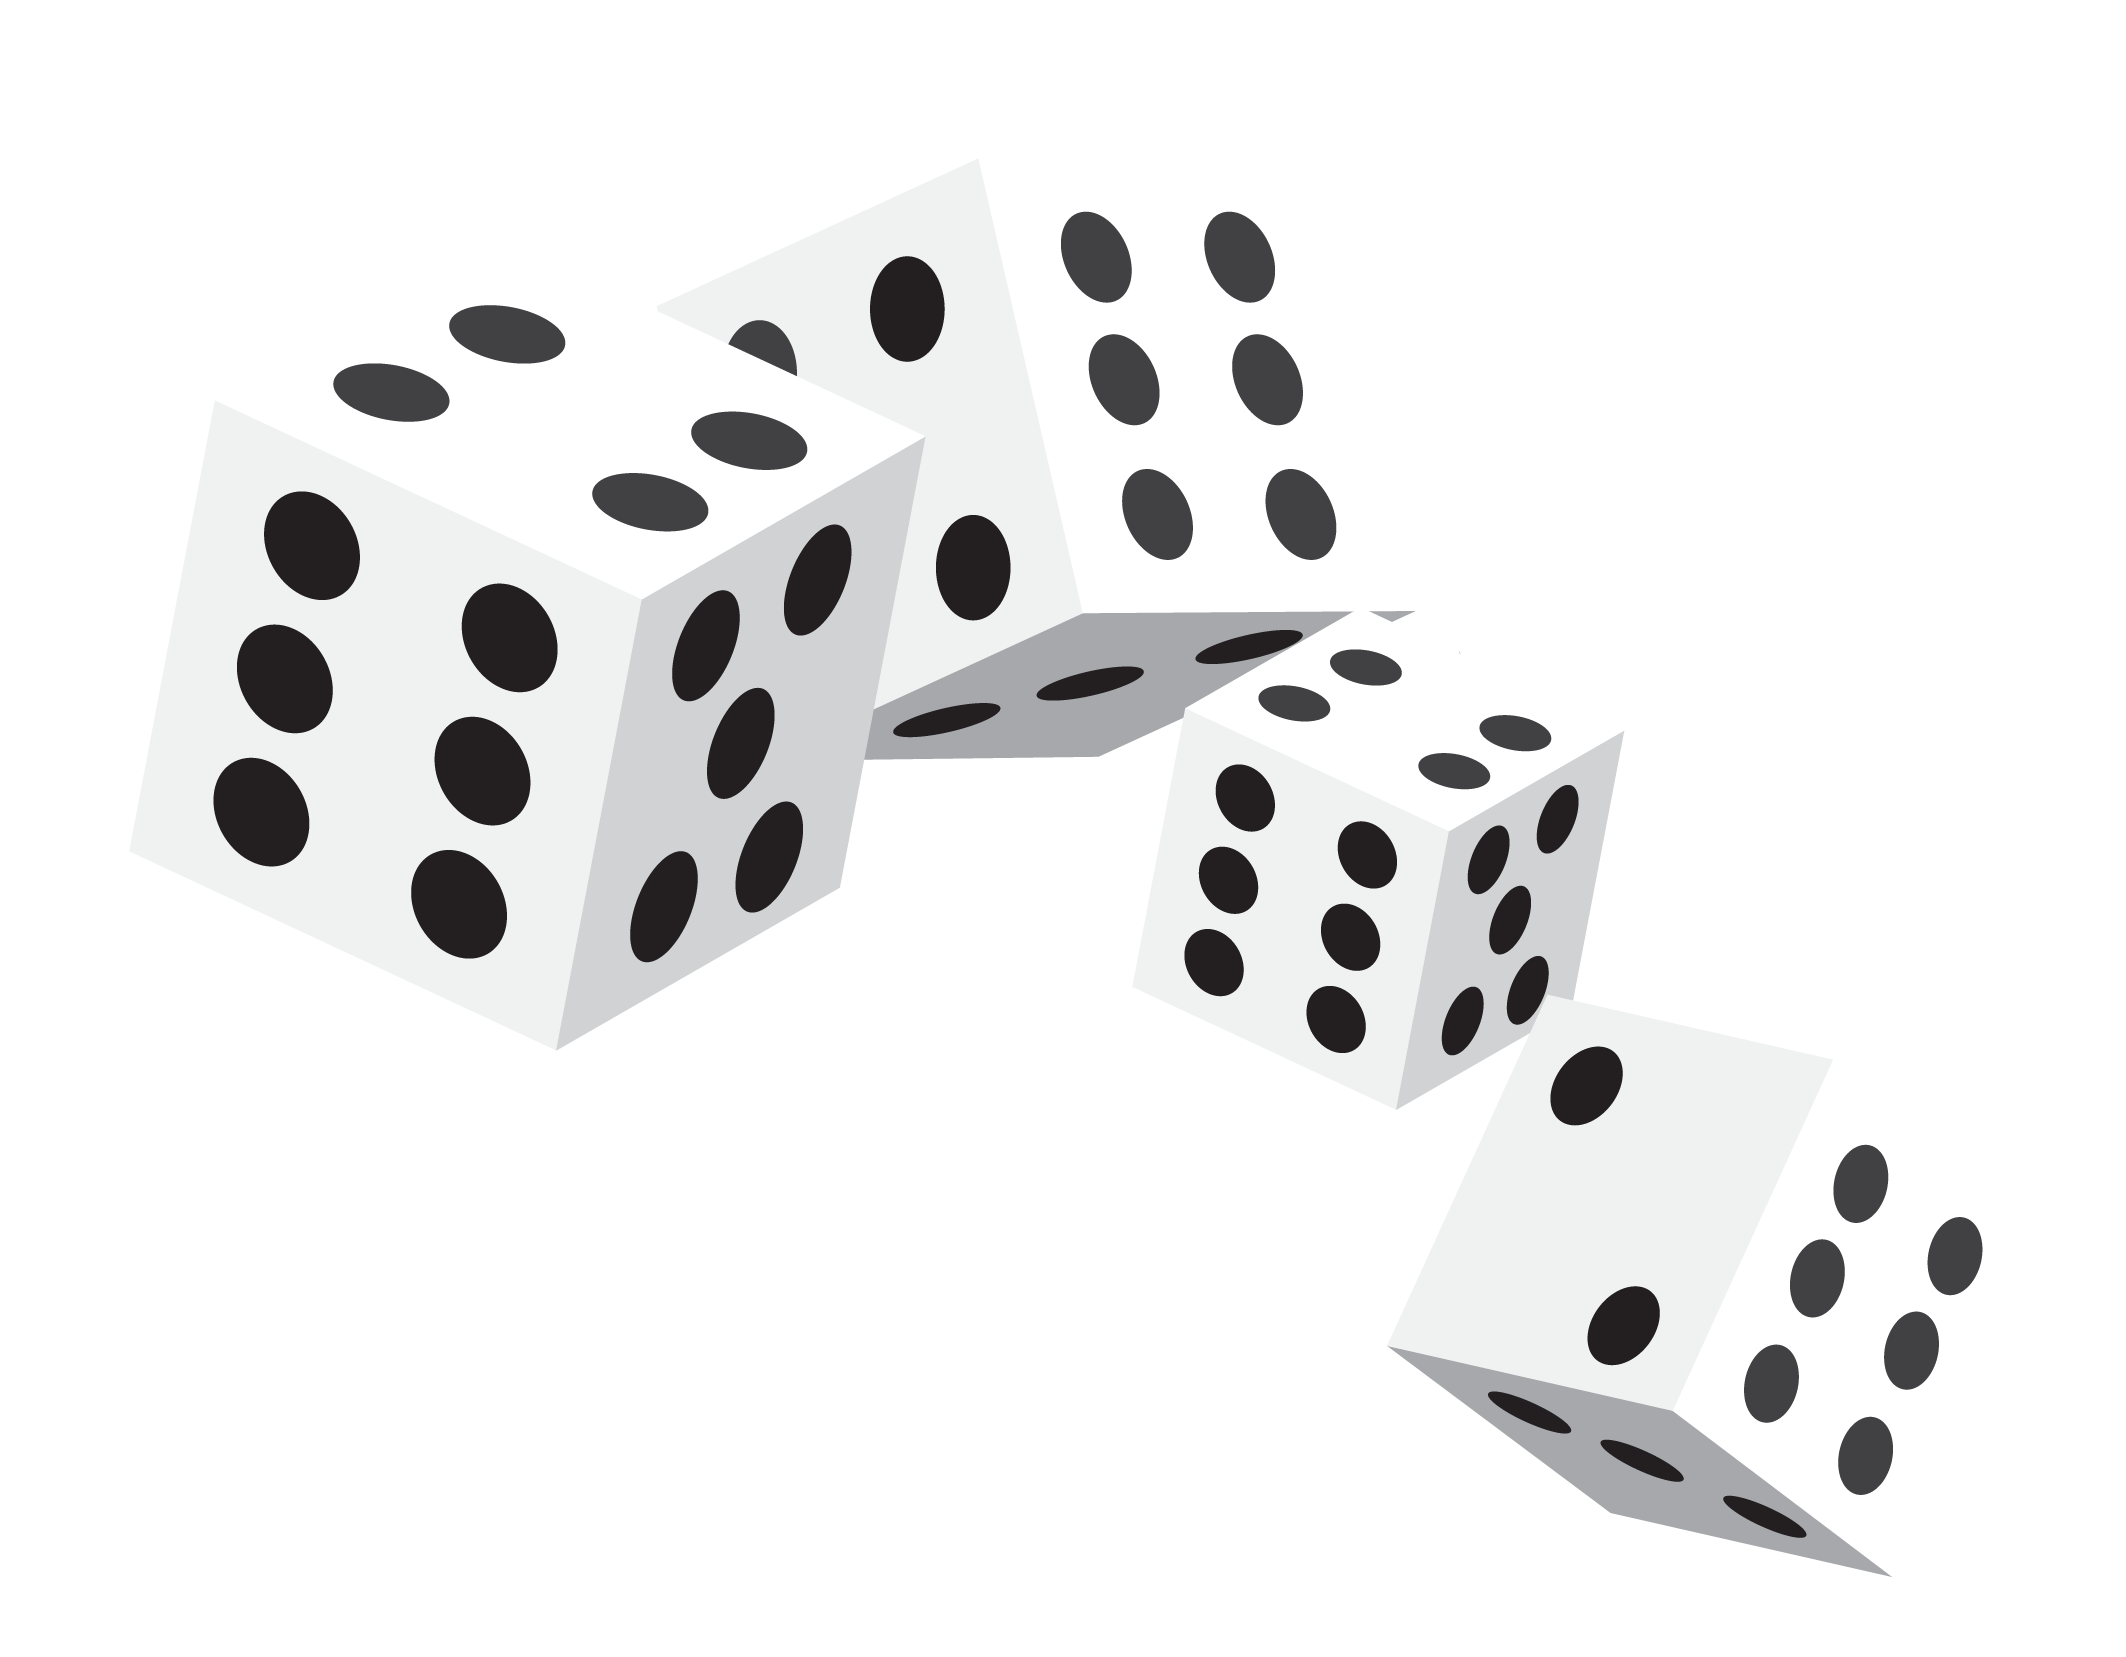 Dice scalable vector.